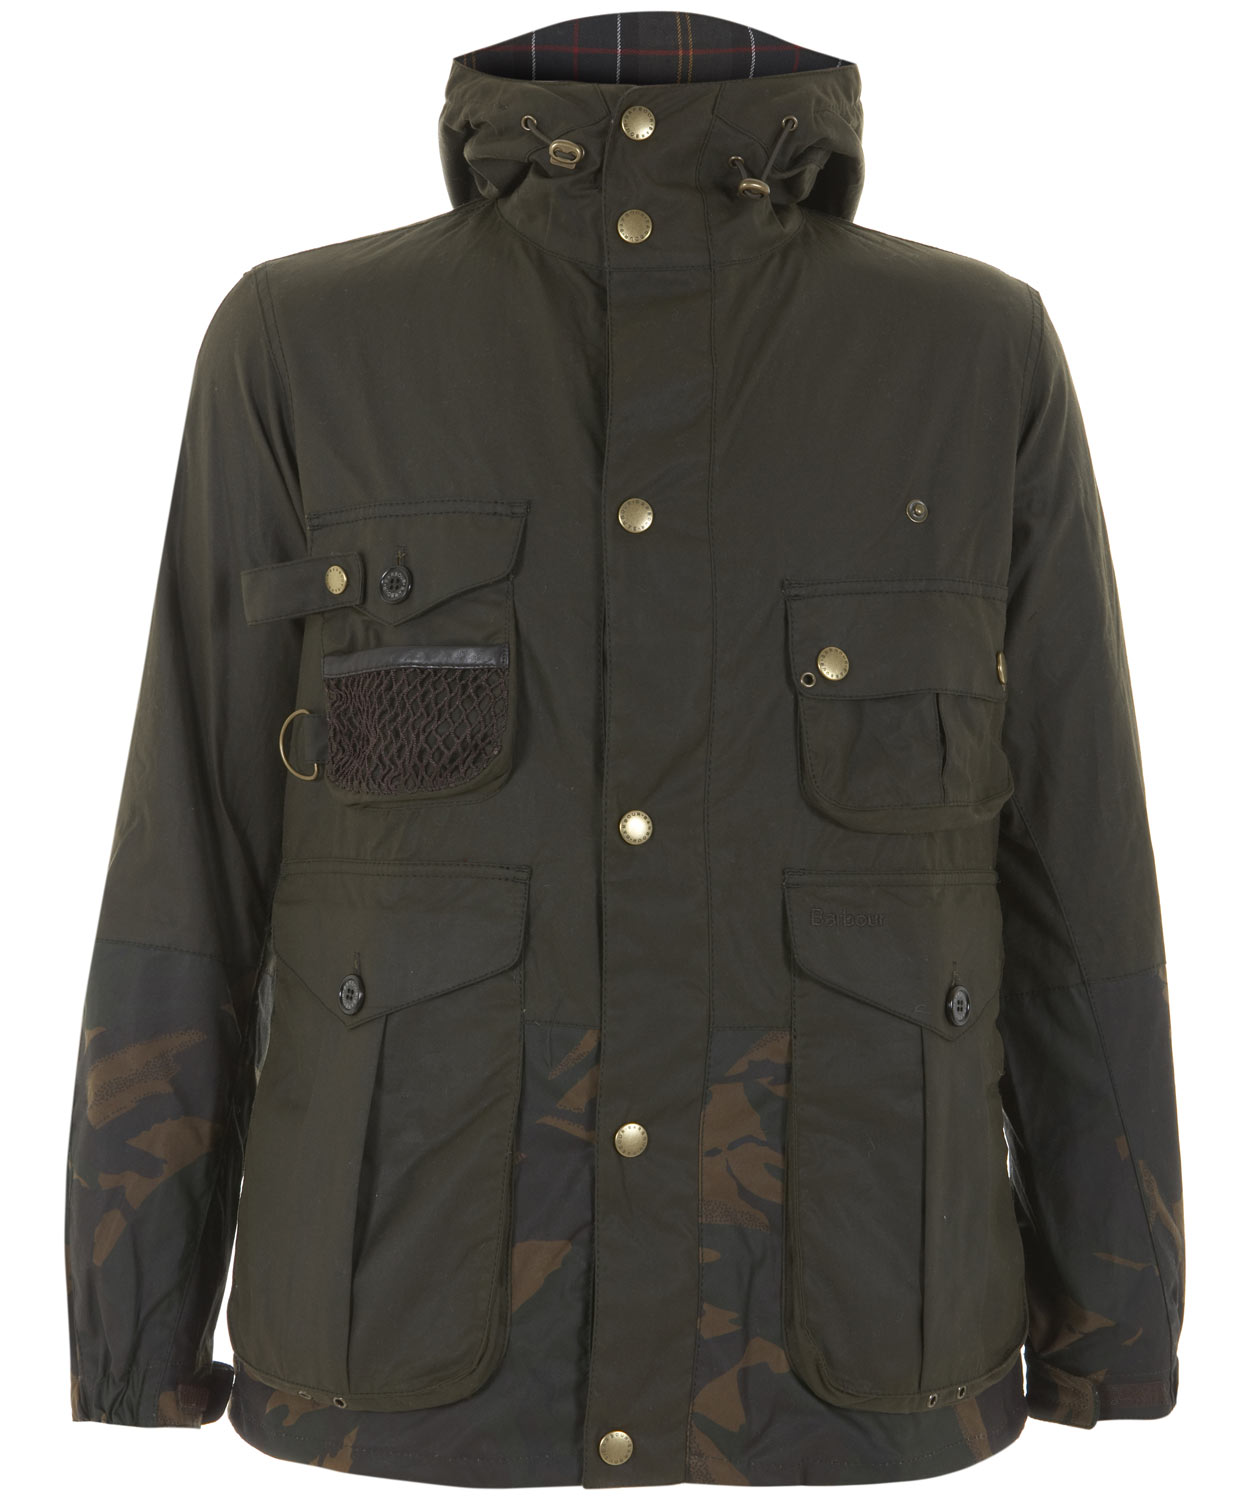 Lyst Barbour Olive Camo Fishing Jacket In Green For Men